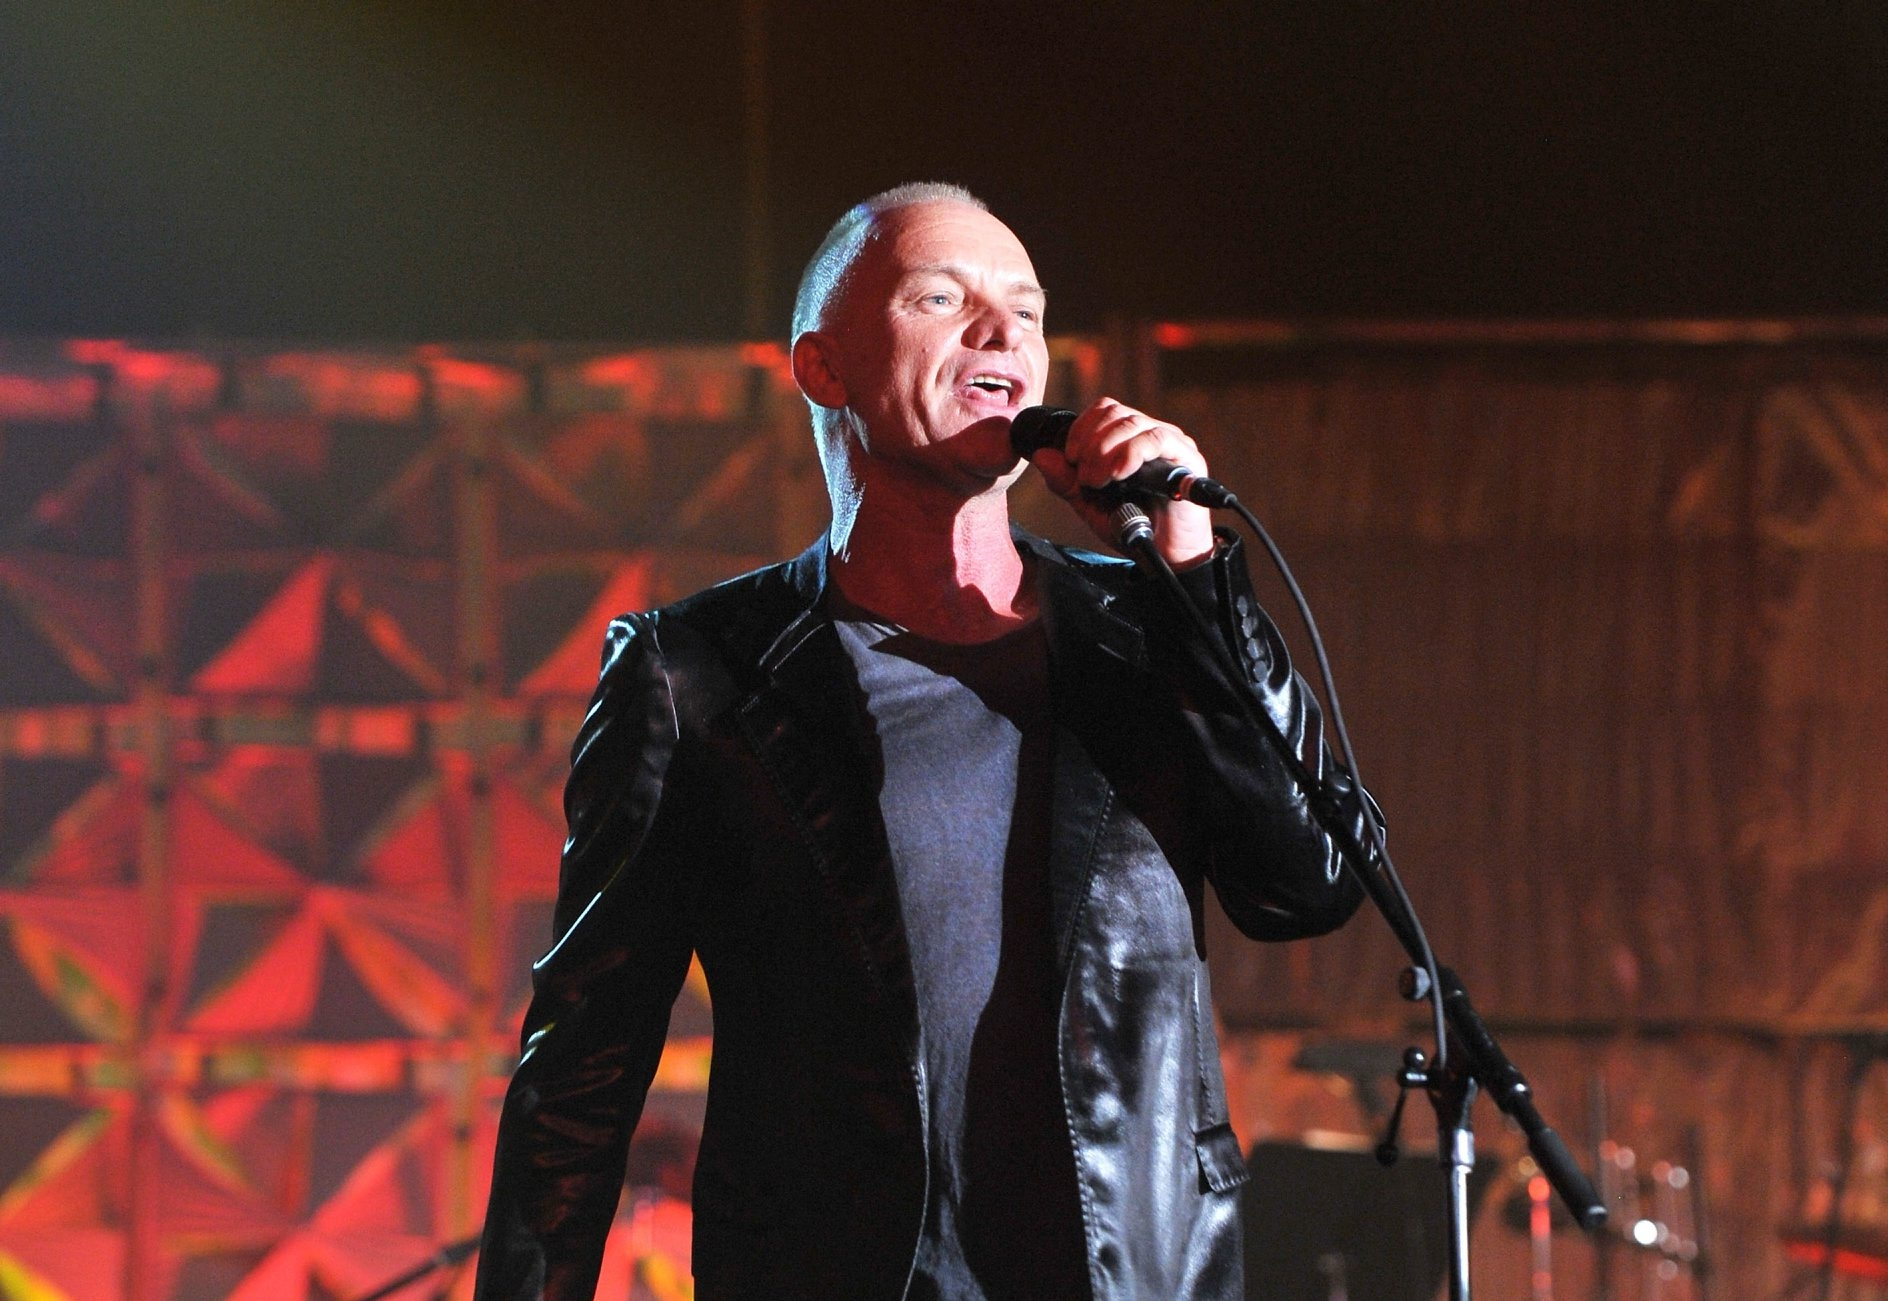 NEW YORK, NY – JUNE 13:  Sting performs onstage at the Songwriters Hall of Fame 44th Annual Induction and Awards Dinner at the New York Marriott Marquis on June 13, 2013 in New York City.  (Photo by Larry Busacca/Getty Images for Songwriters Hall Of Fame)